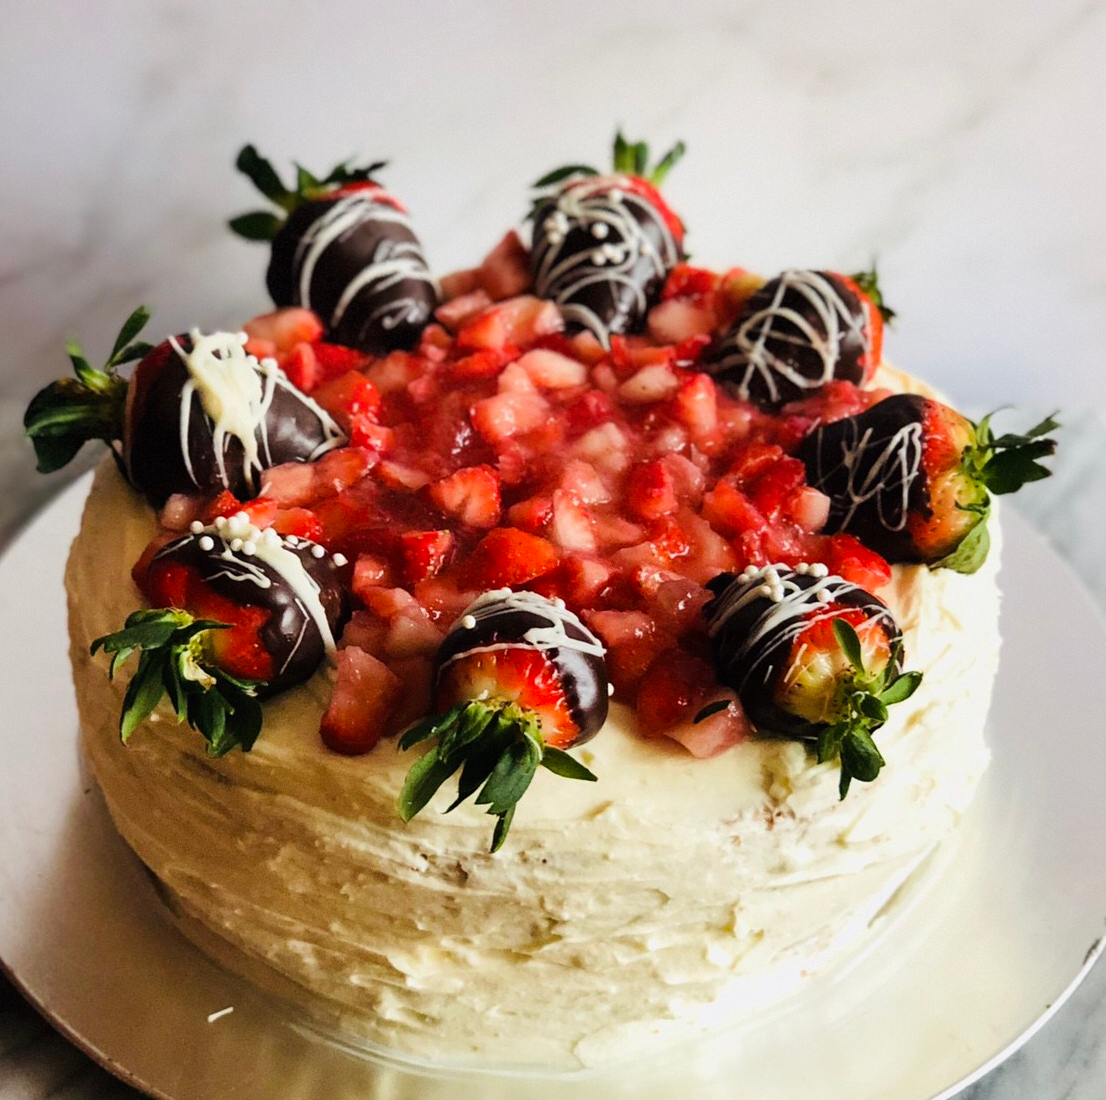 Strawberries & Cream Layer Cake with Chocolate Covered Strawberries